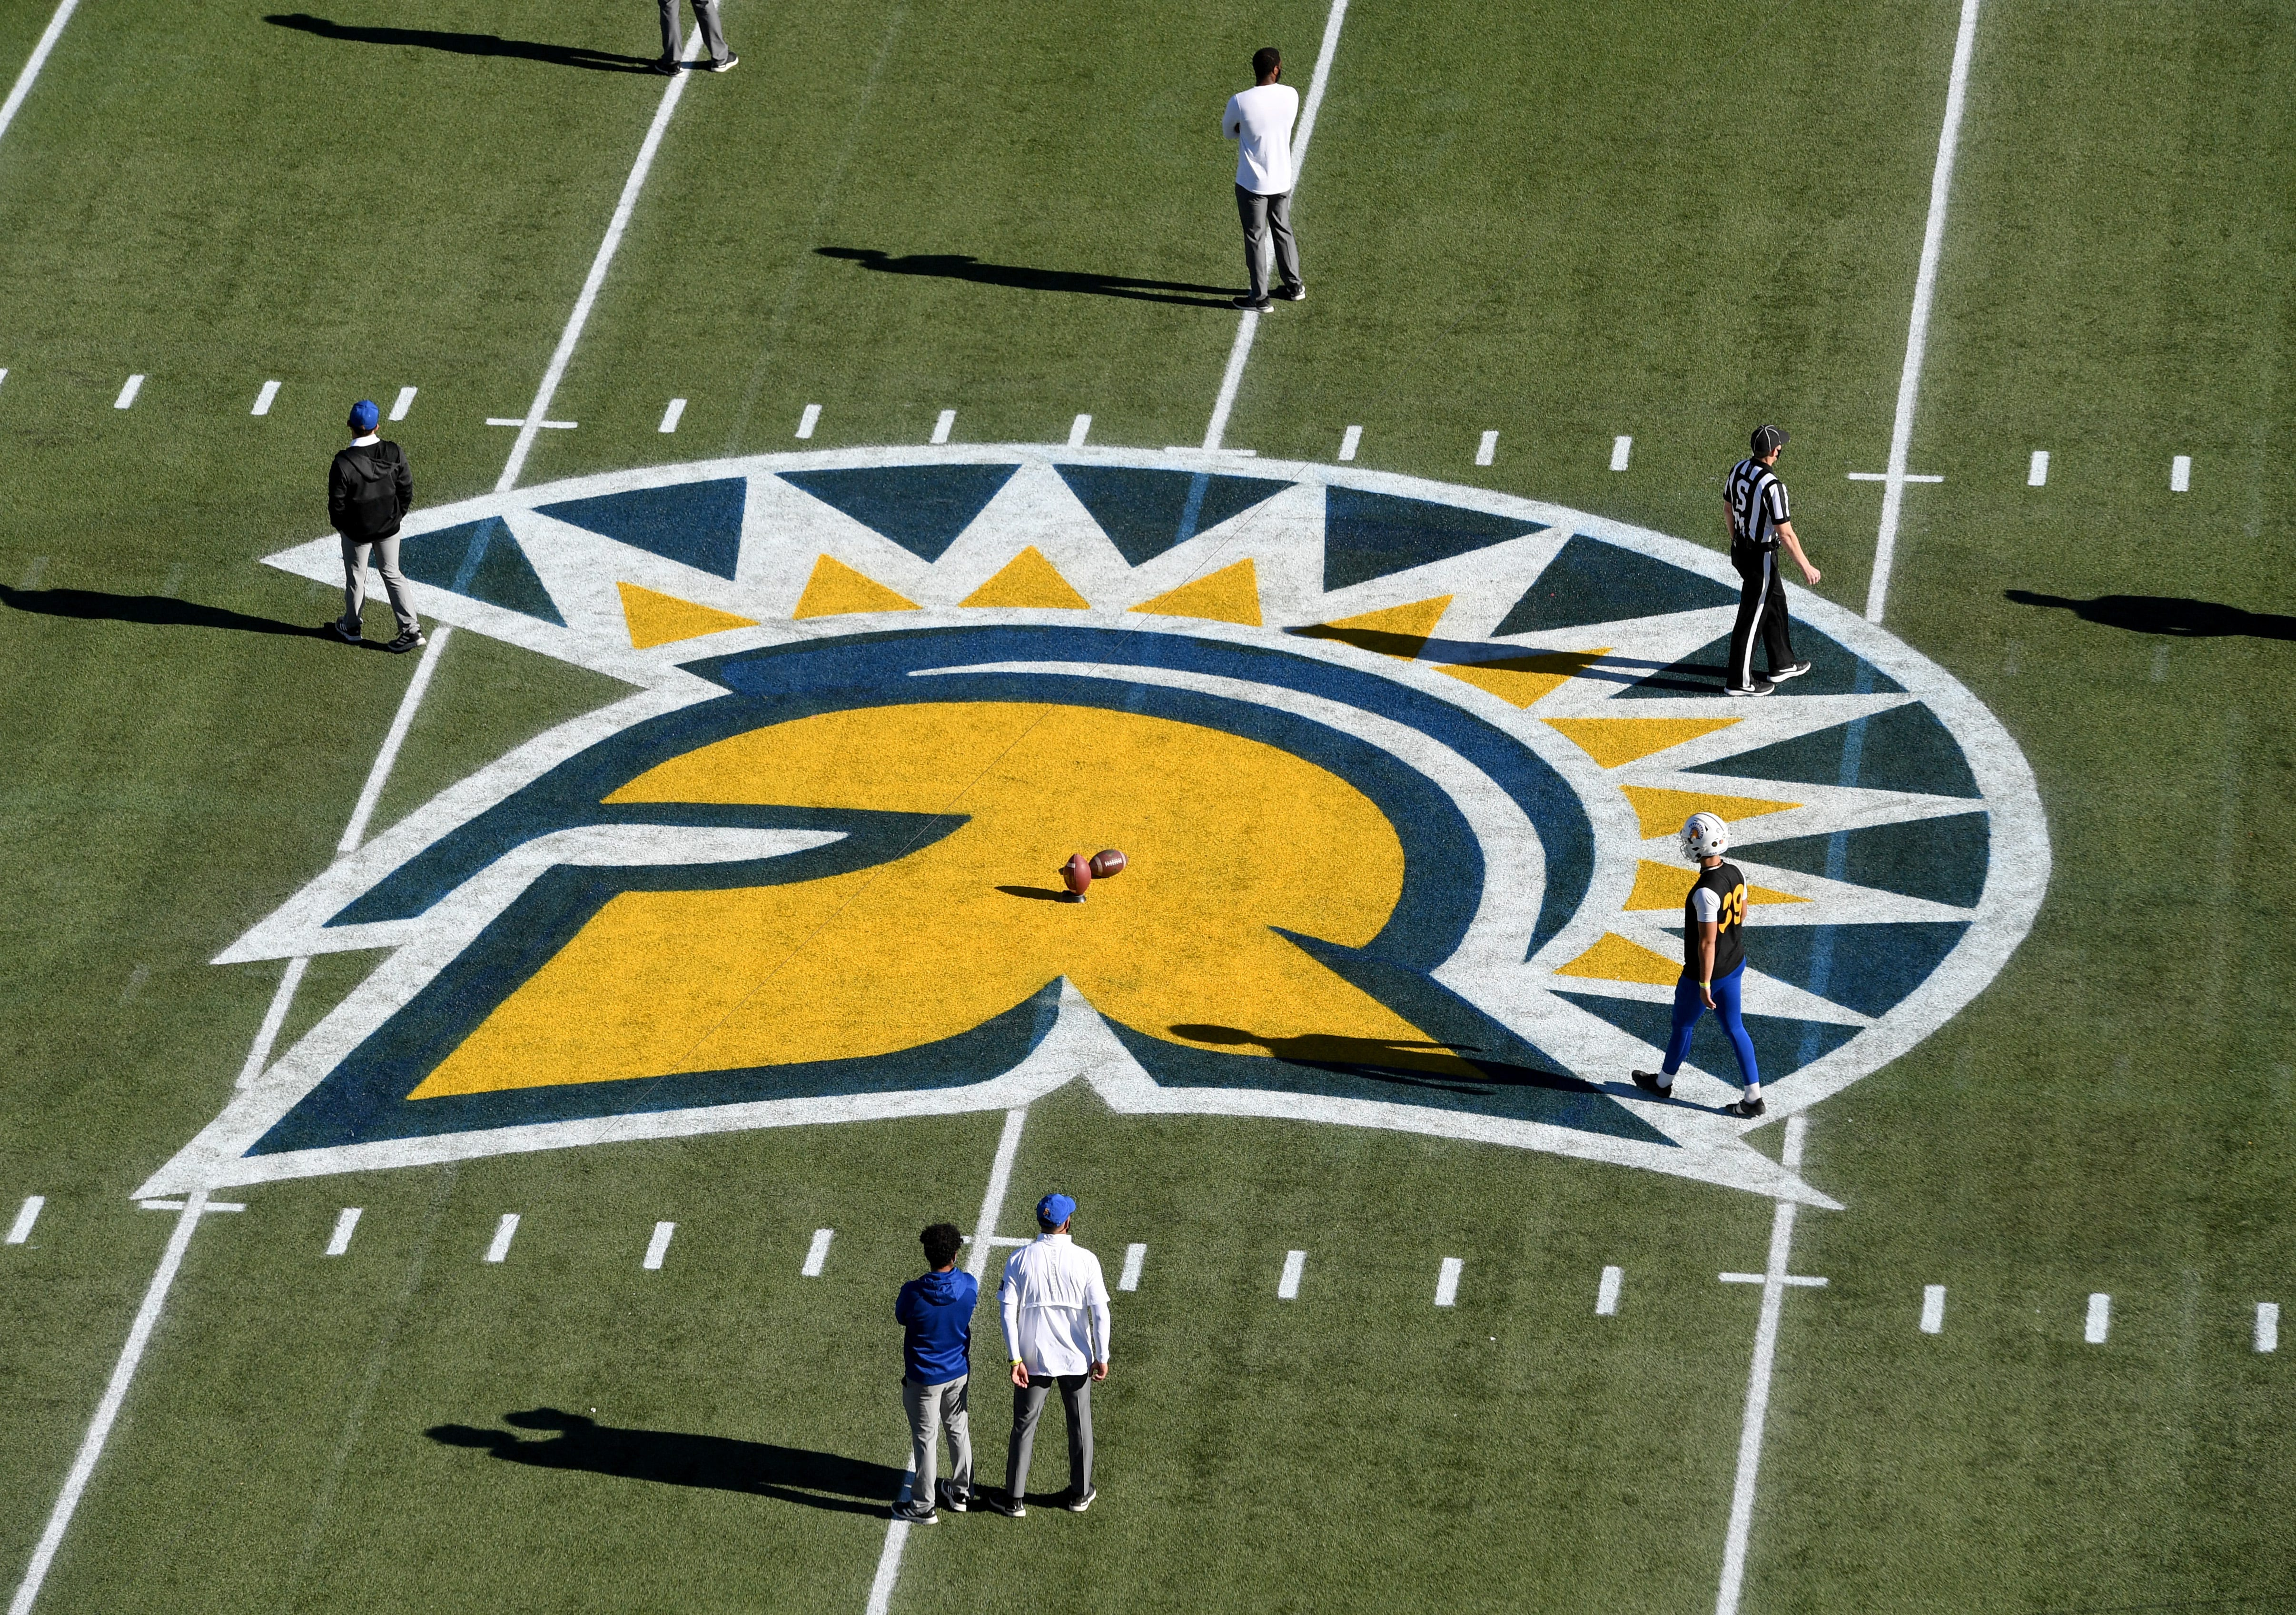 San Jose State says ex-trainer improperly touched athletes 1